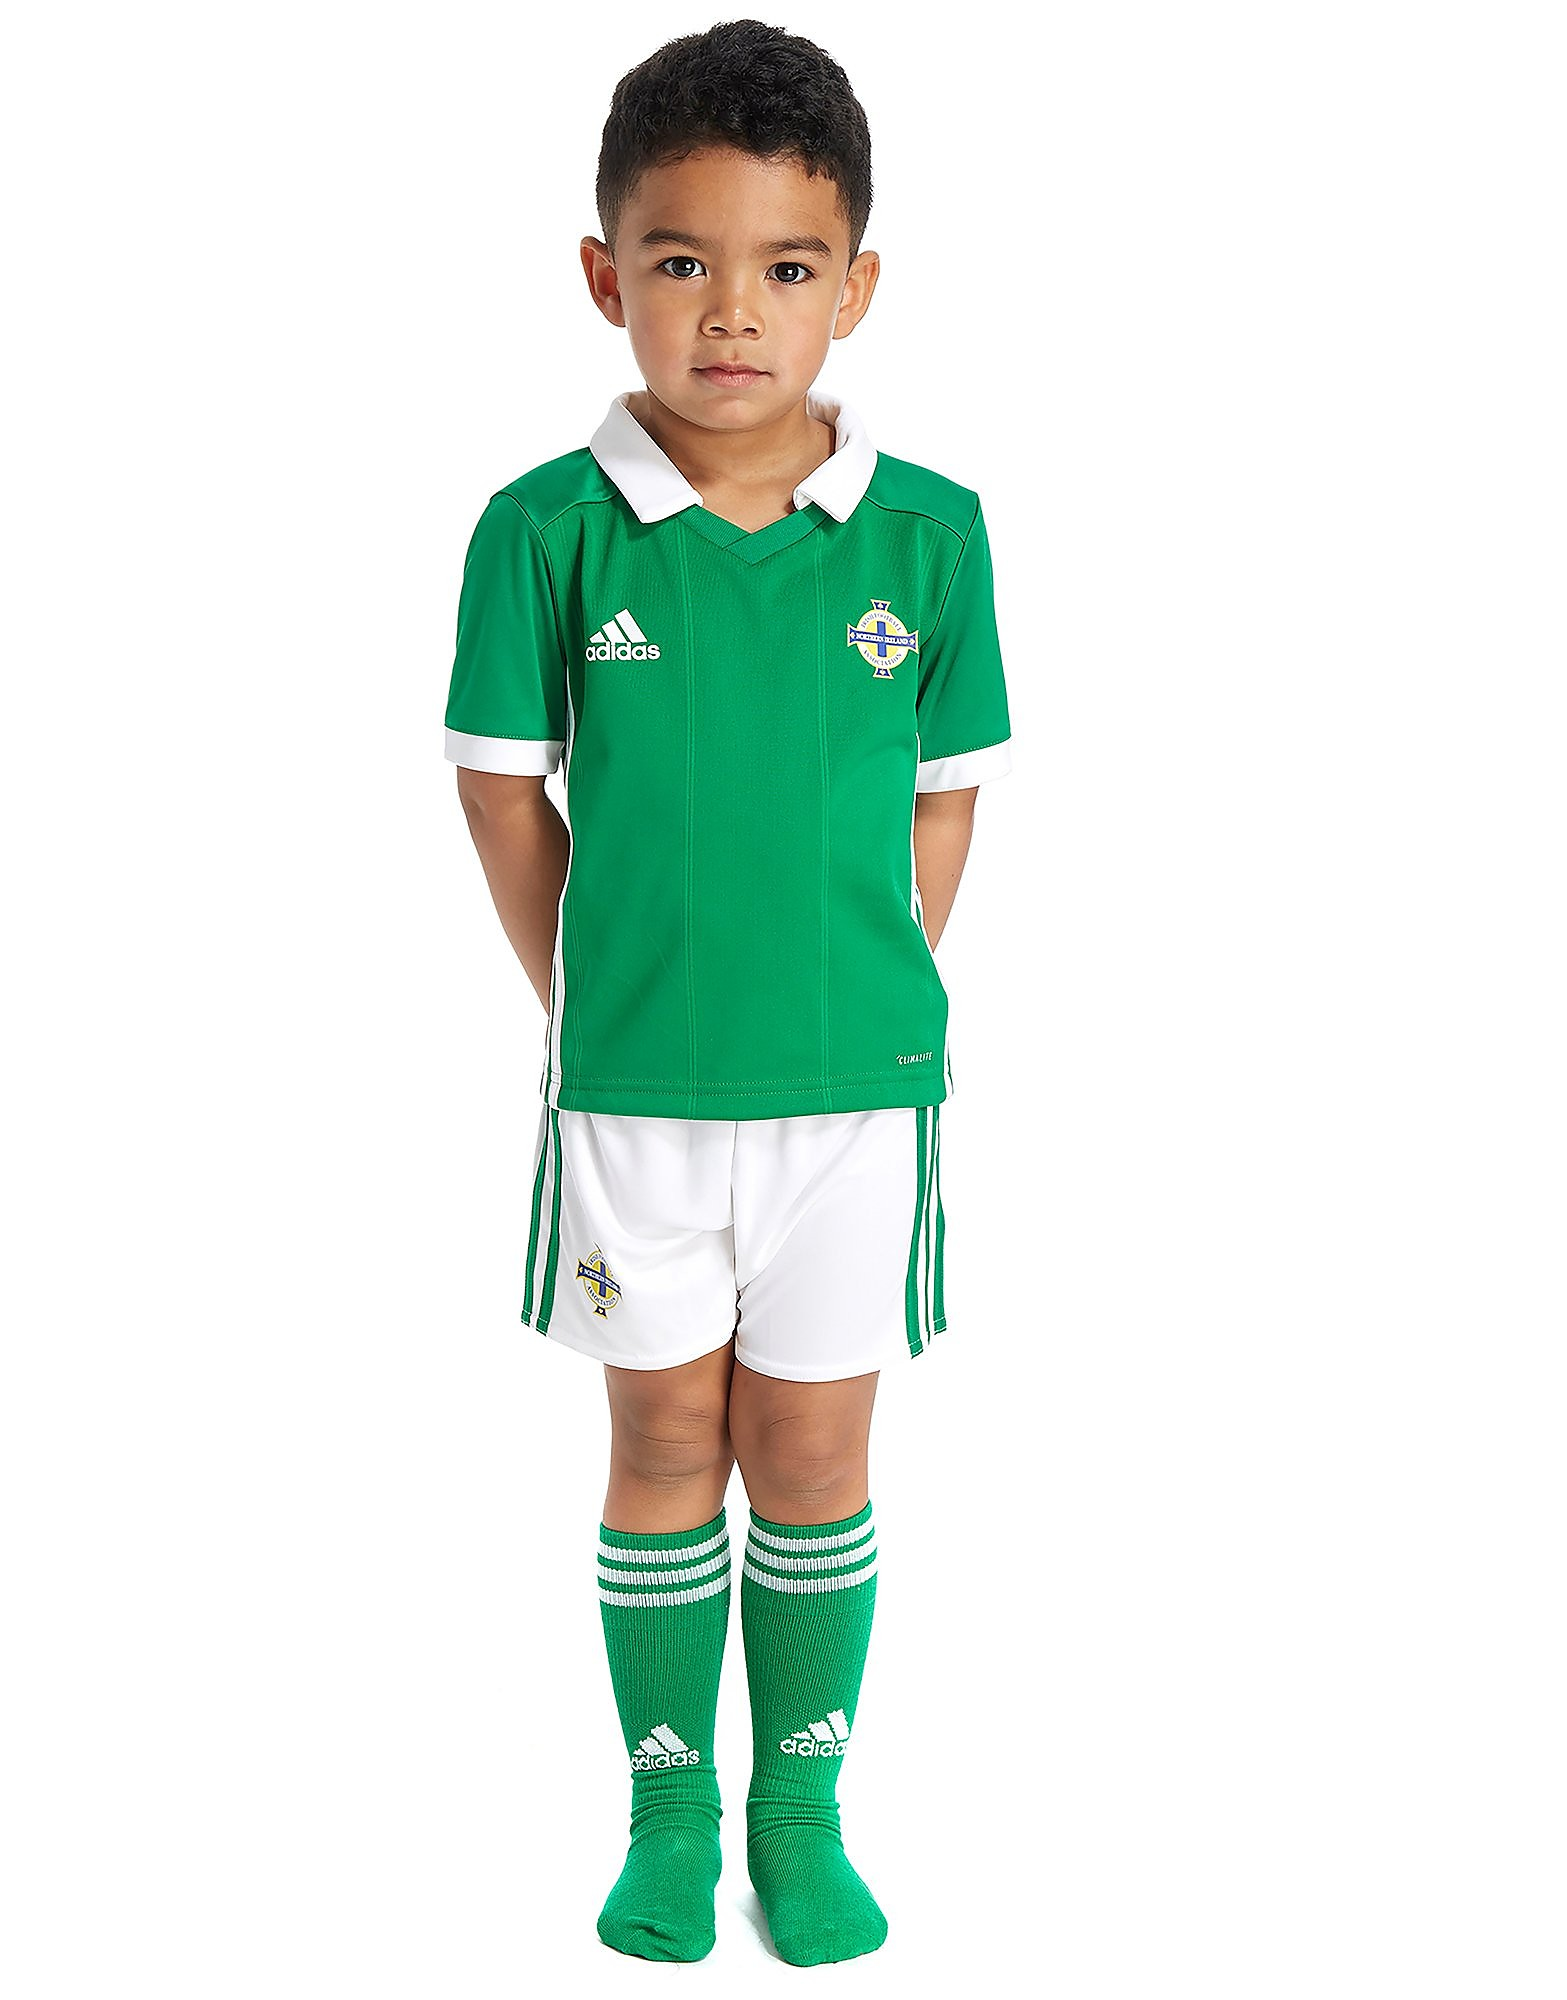 adidas Northern Ireland 2017/18 Home Kit Children